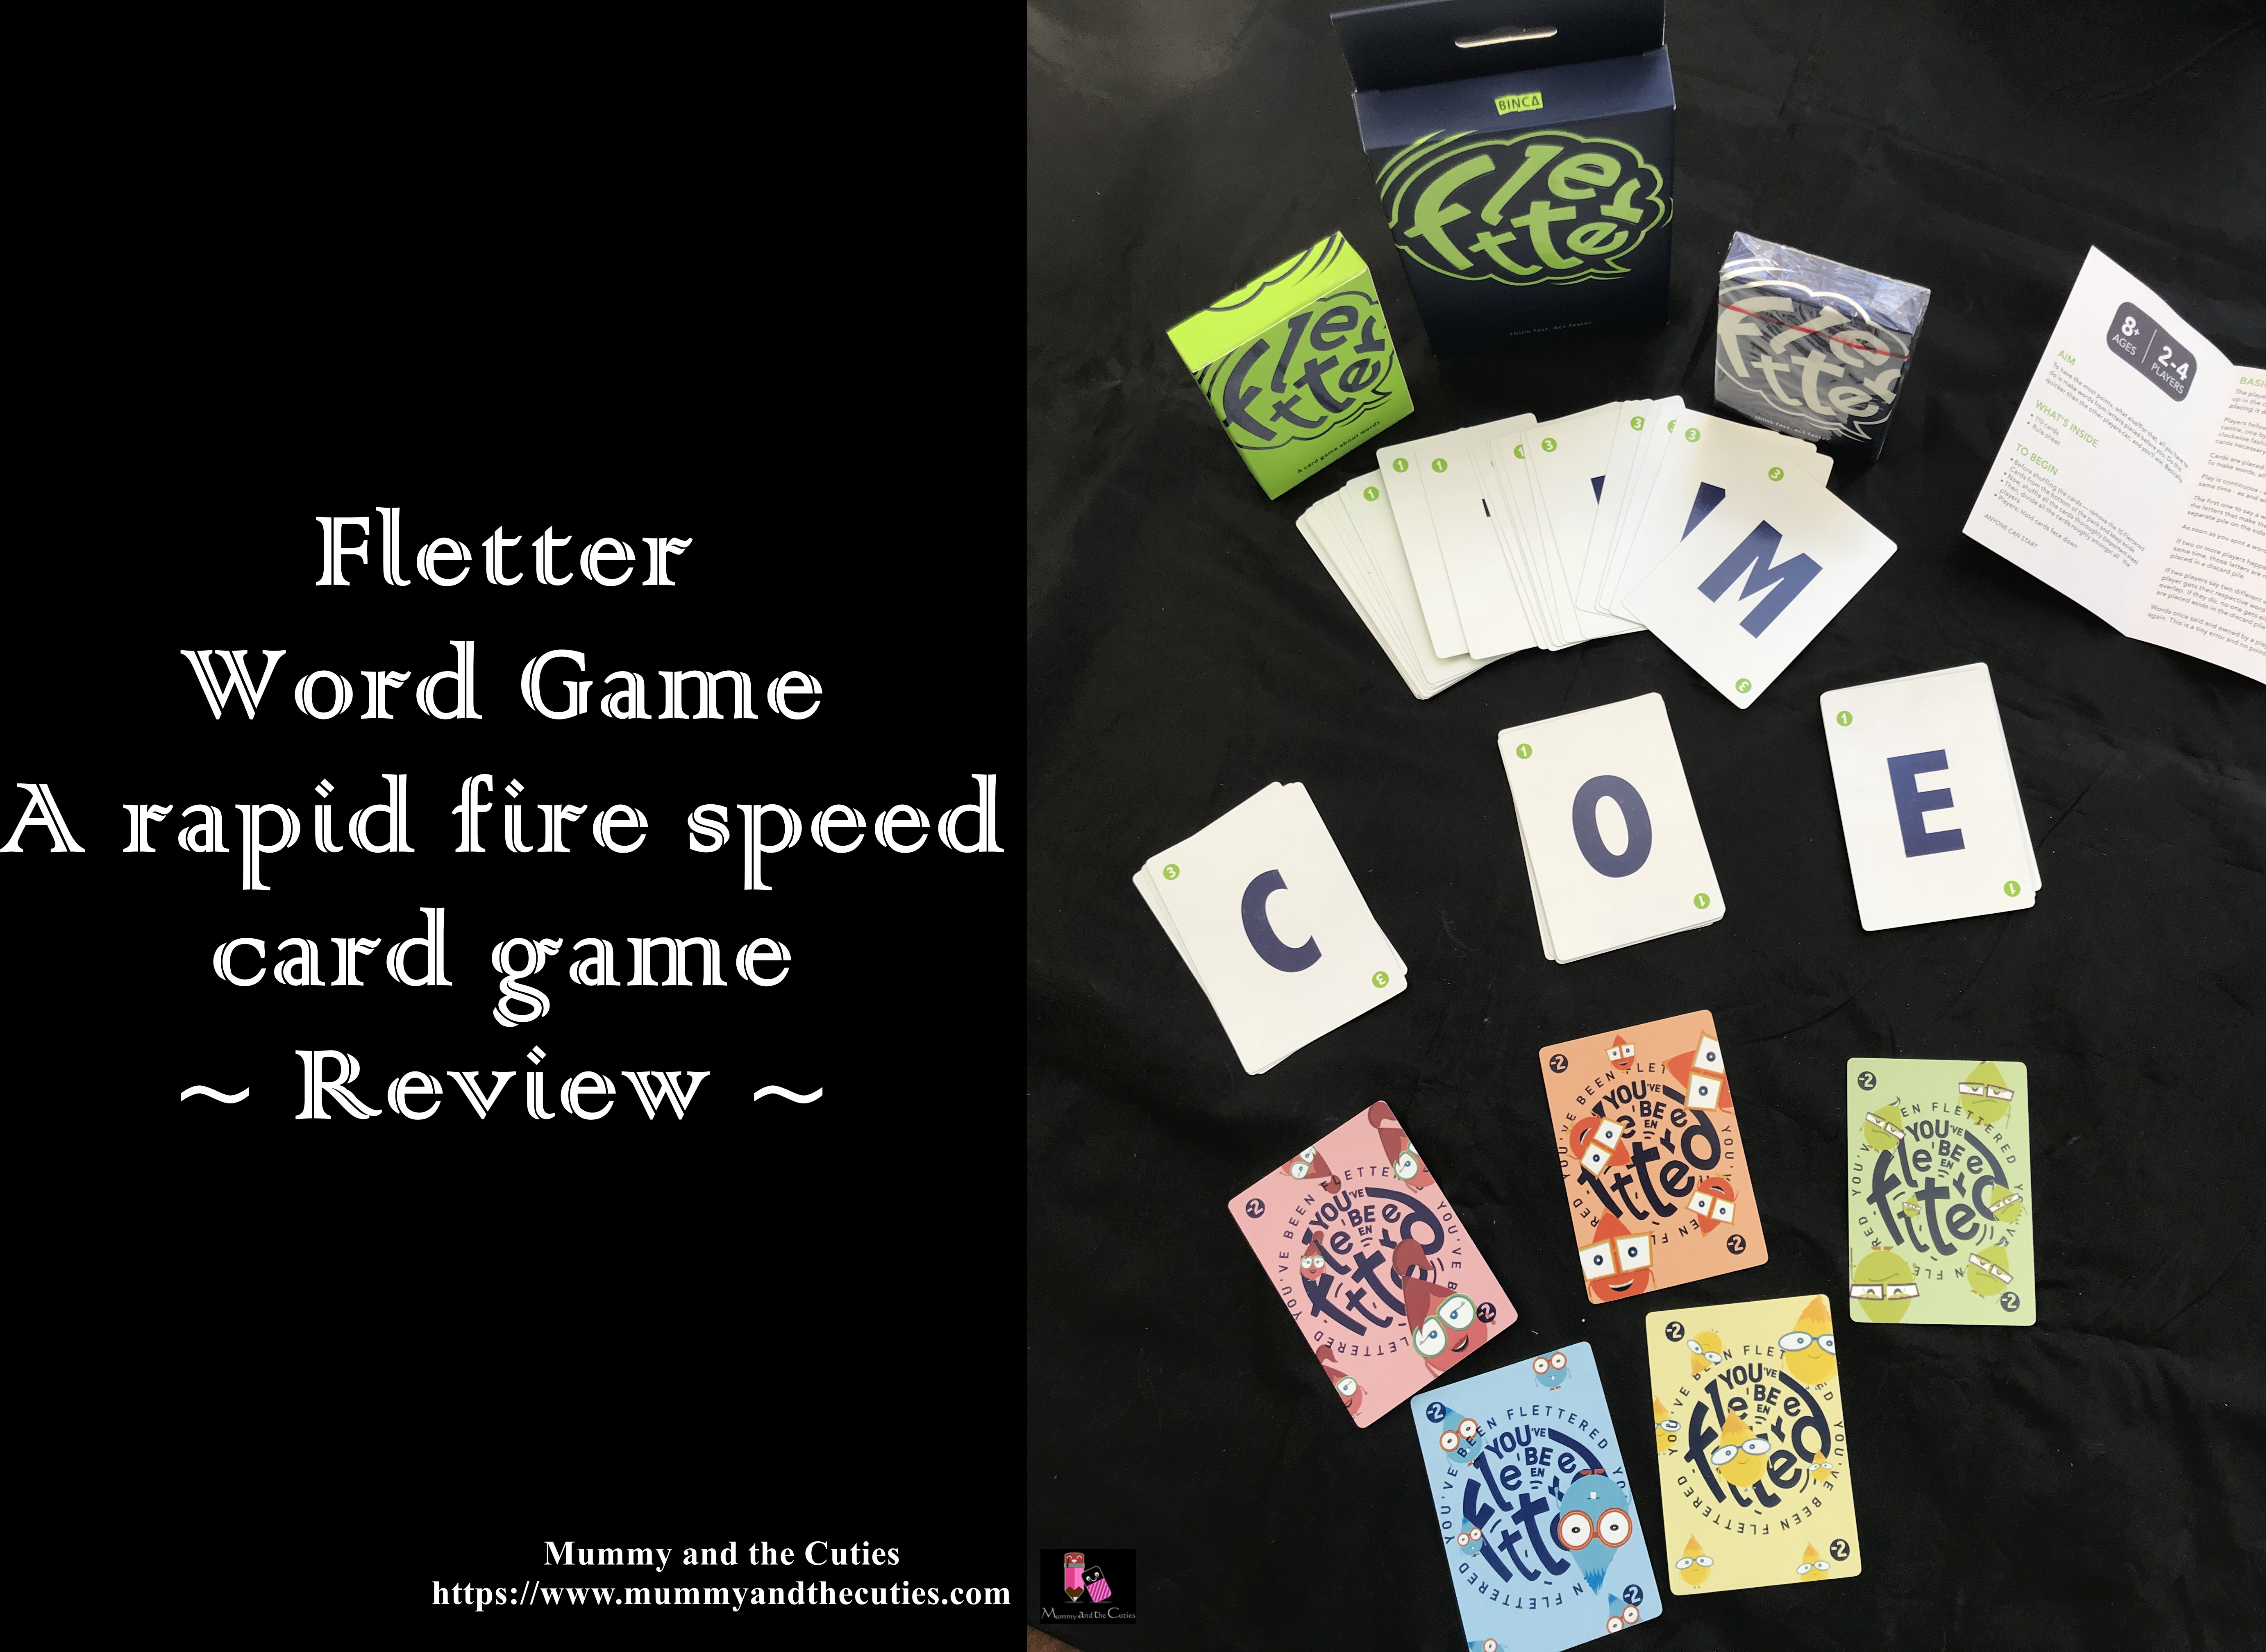 Fletter Word Game A Rapid Fire Speed Card Game Review Mummy And